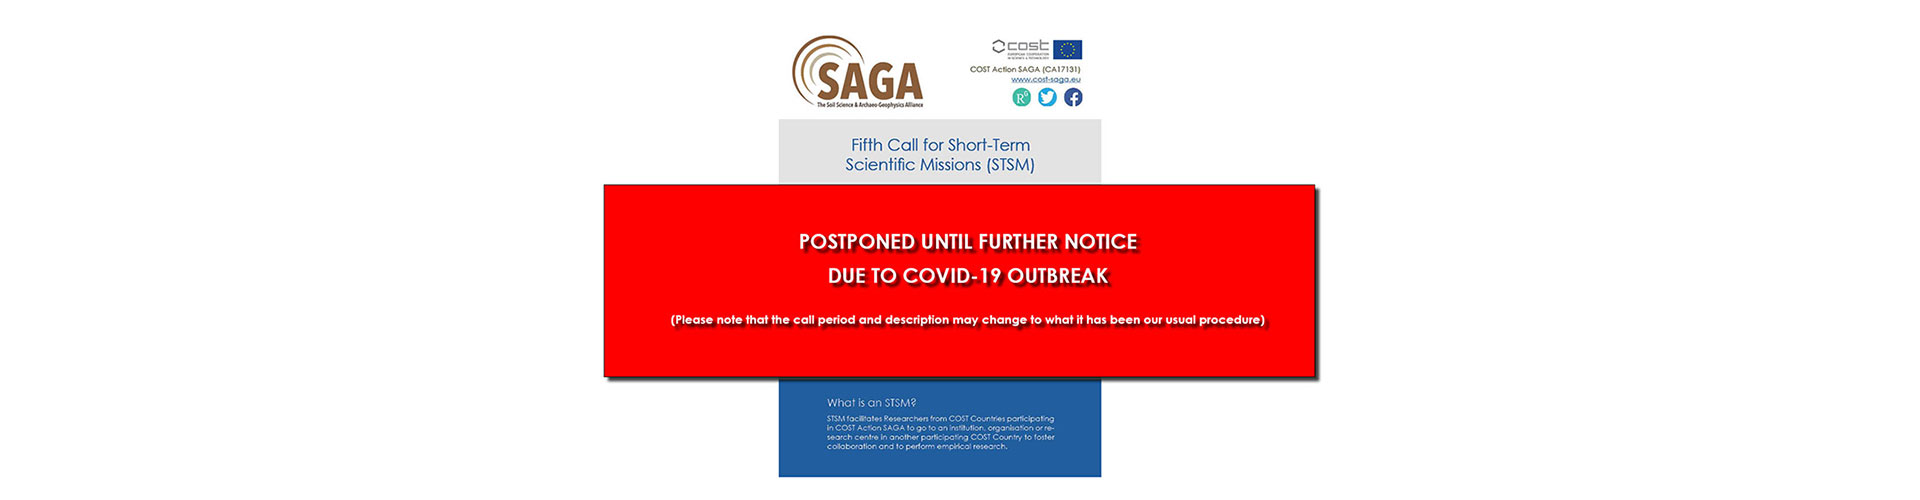 ***5th Call for STSM postponed until further notice due to COVID-19 outbreak***